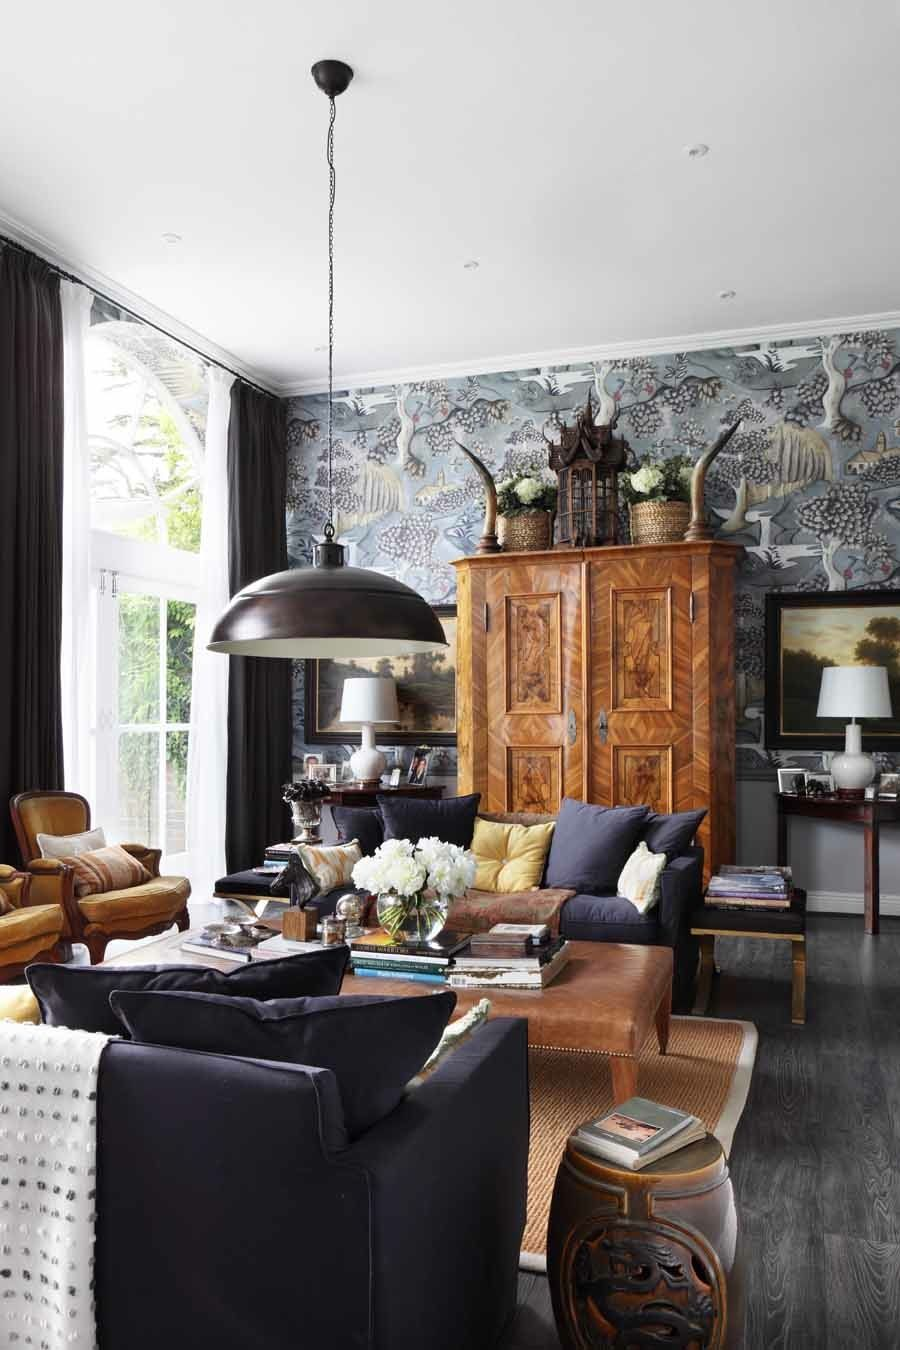 VSP Interiors Is A High End Interior Design Company Founded In 2000 By  Partners Henriette Von